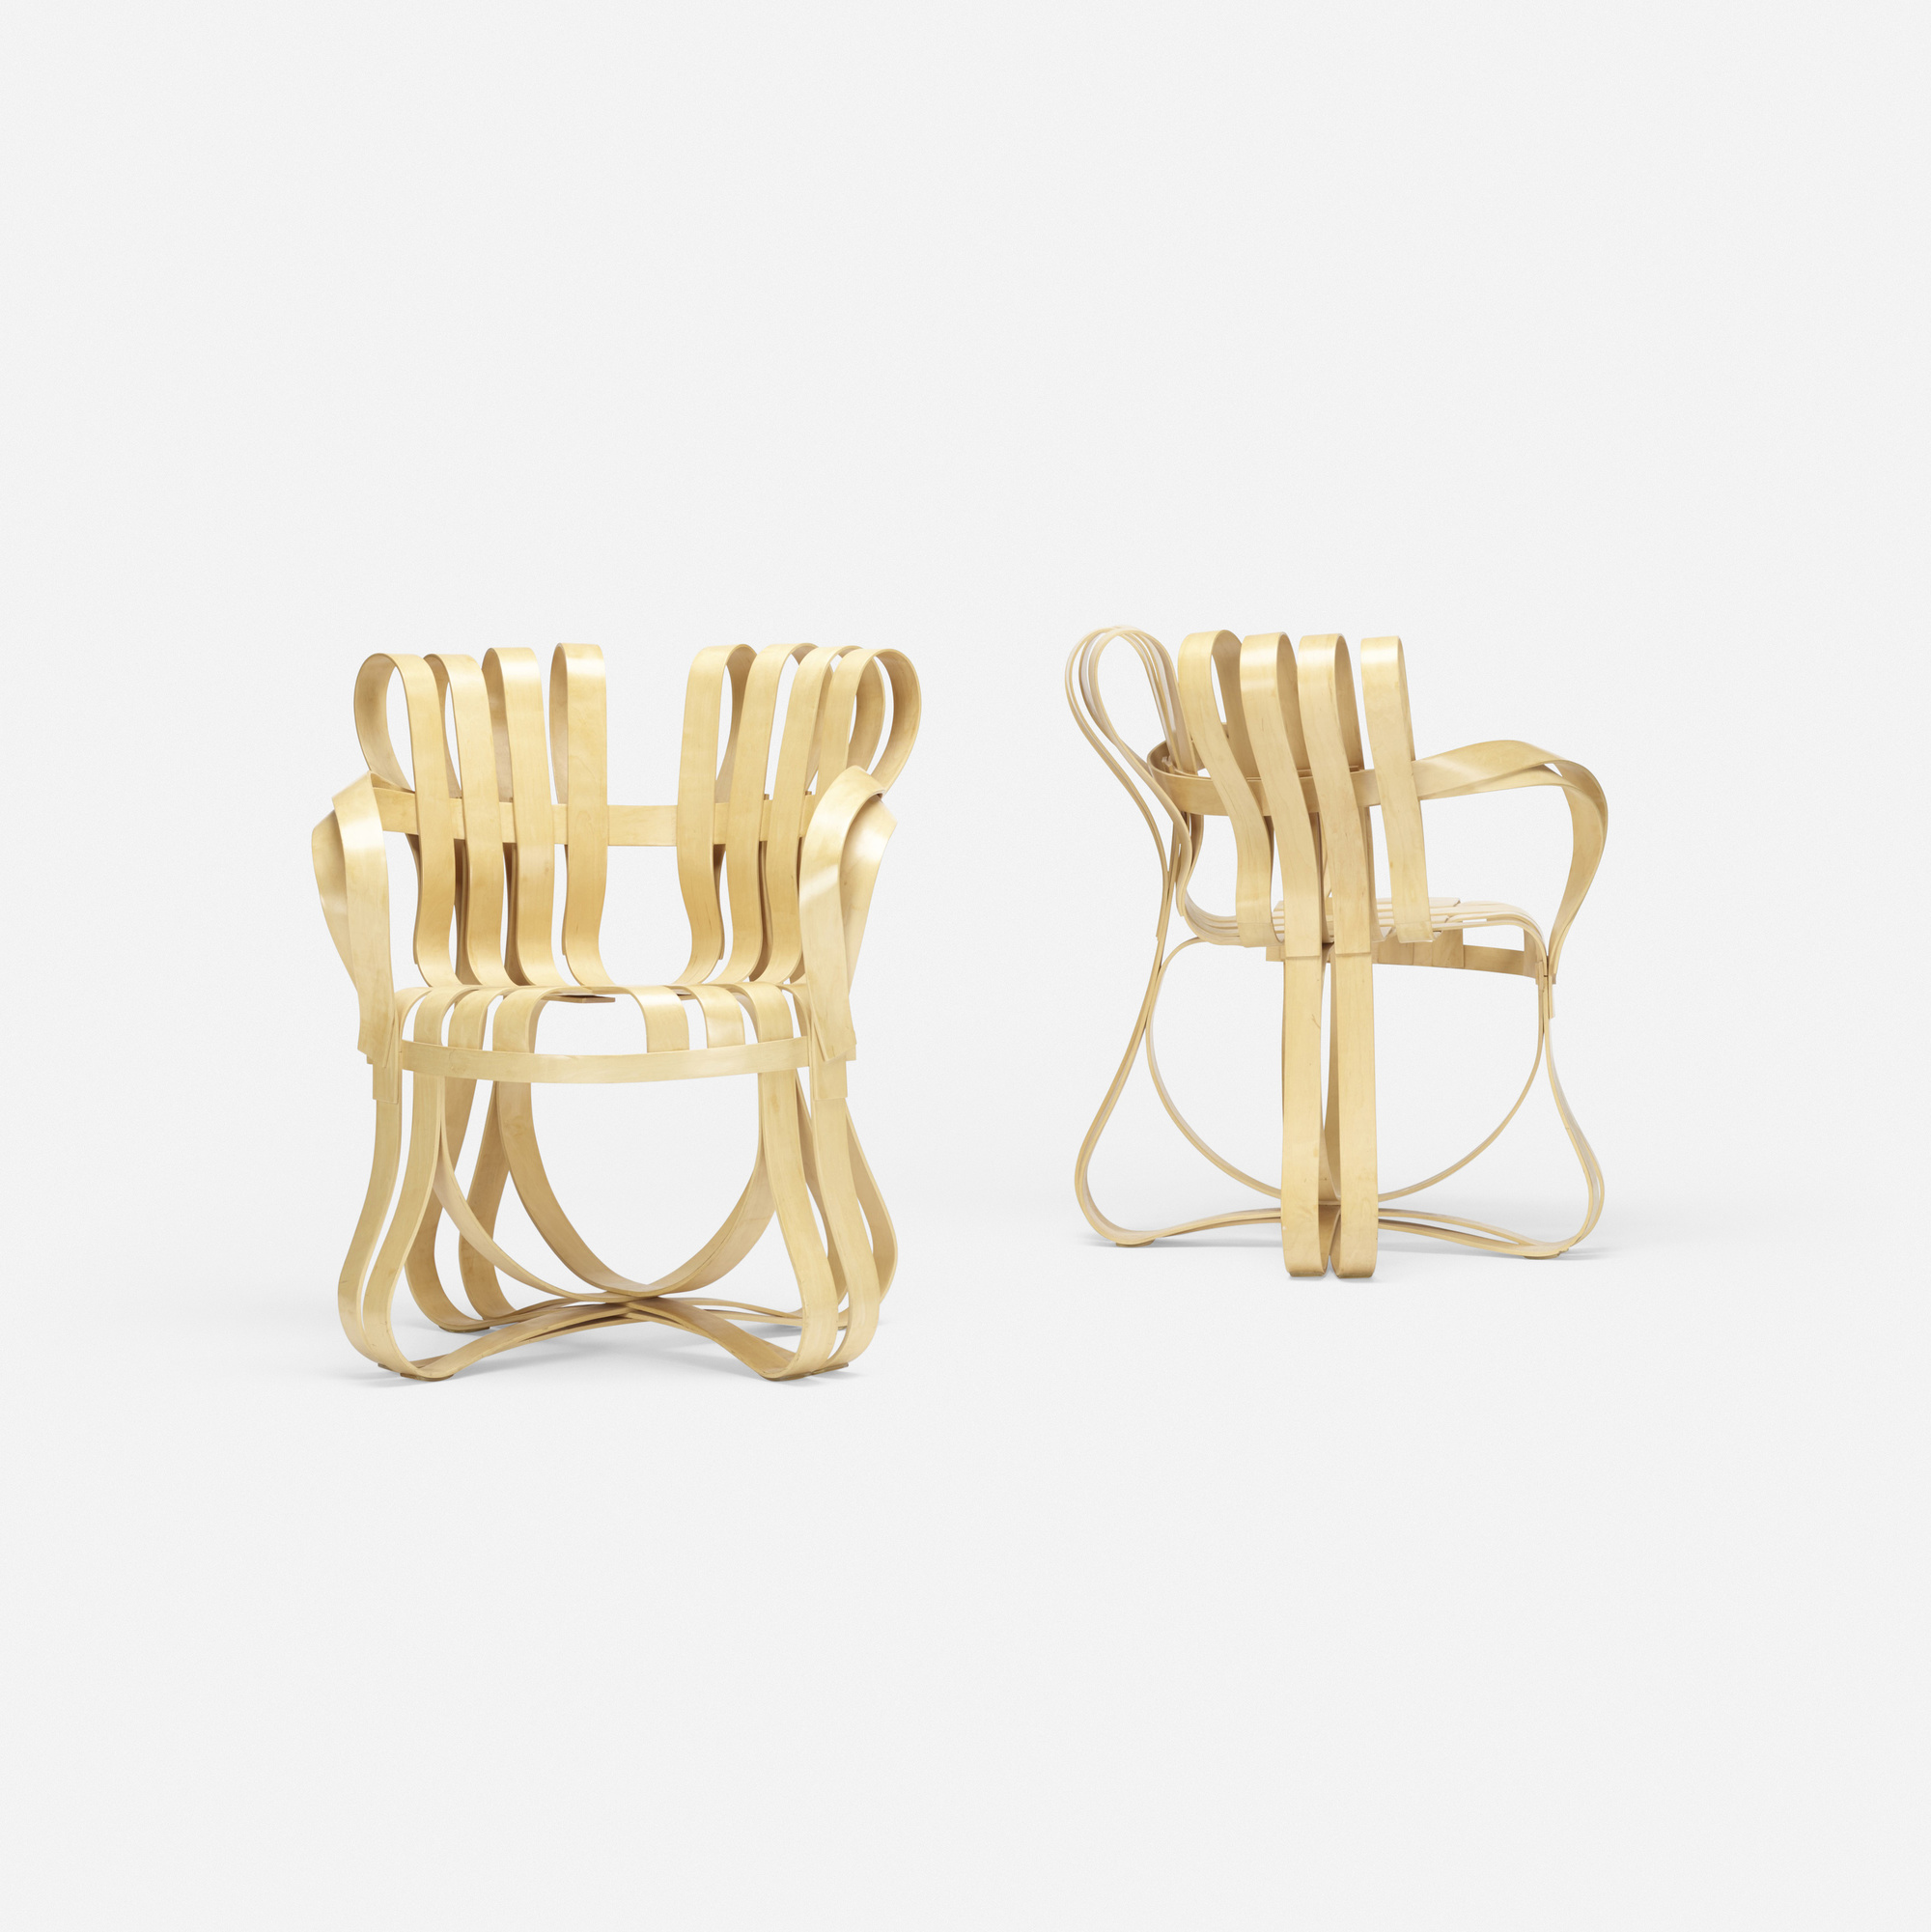 305: Frank Gehry / Cross Check armchairs, pair (2 of 2)